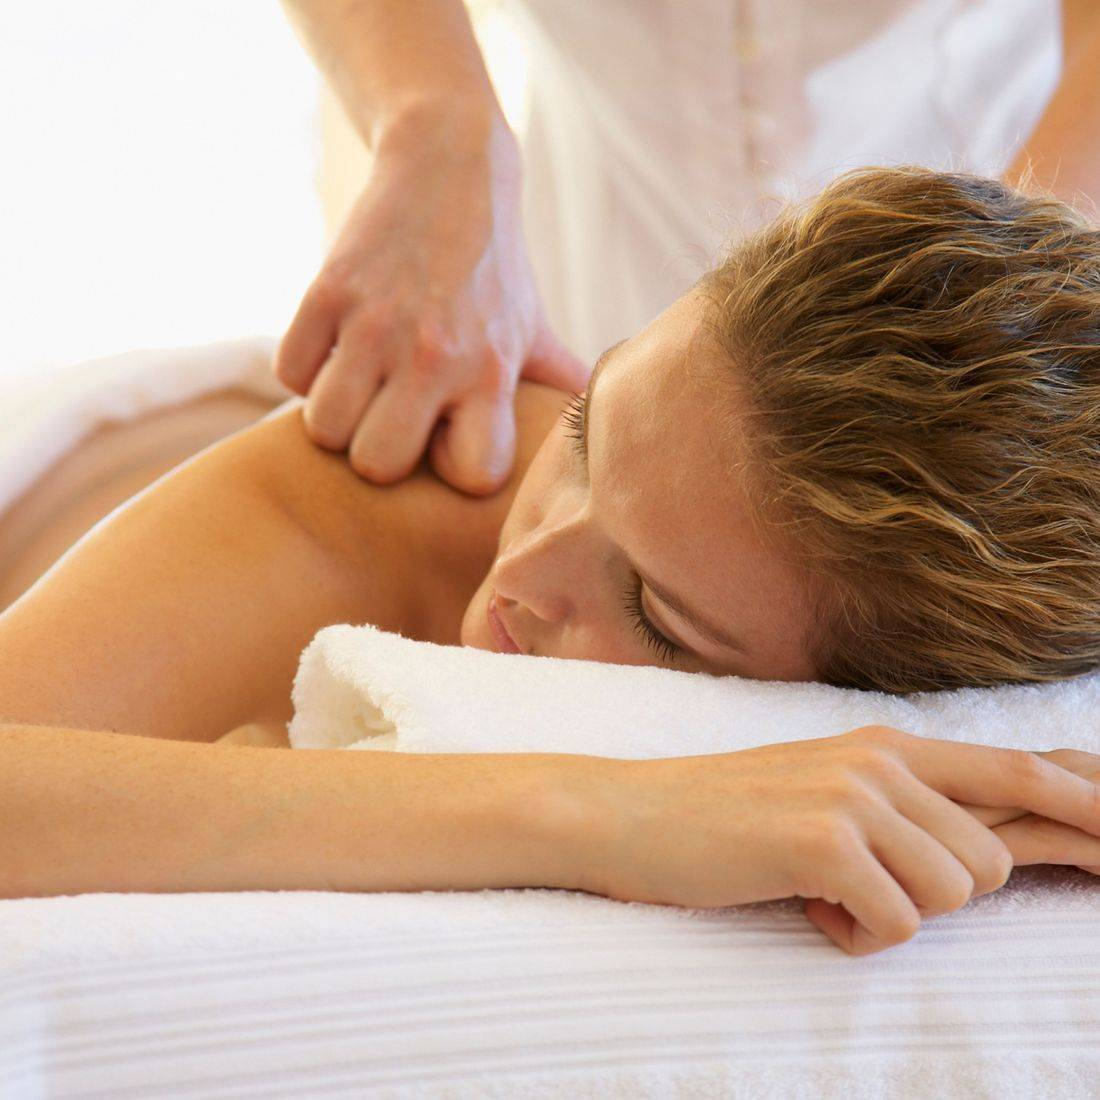 Linda Rea, LMT of Professional Therapeutic Massage specializes in trigger point release.